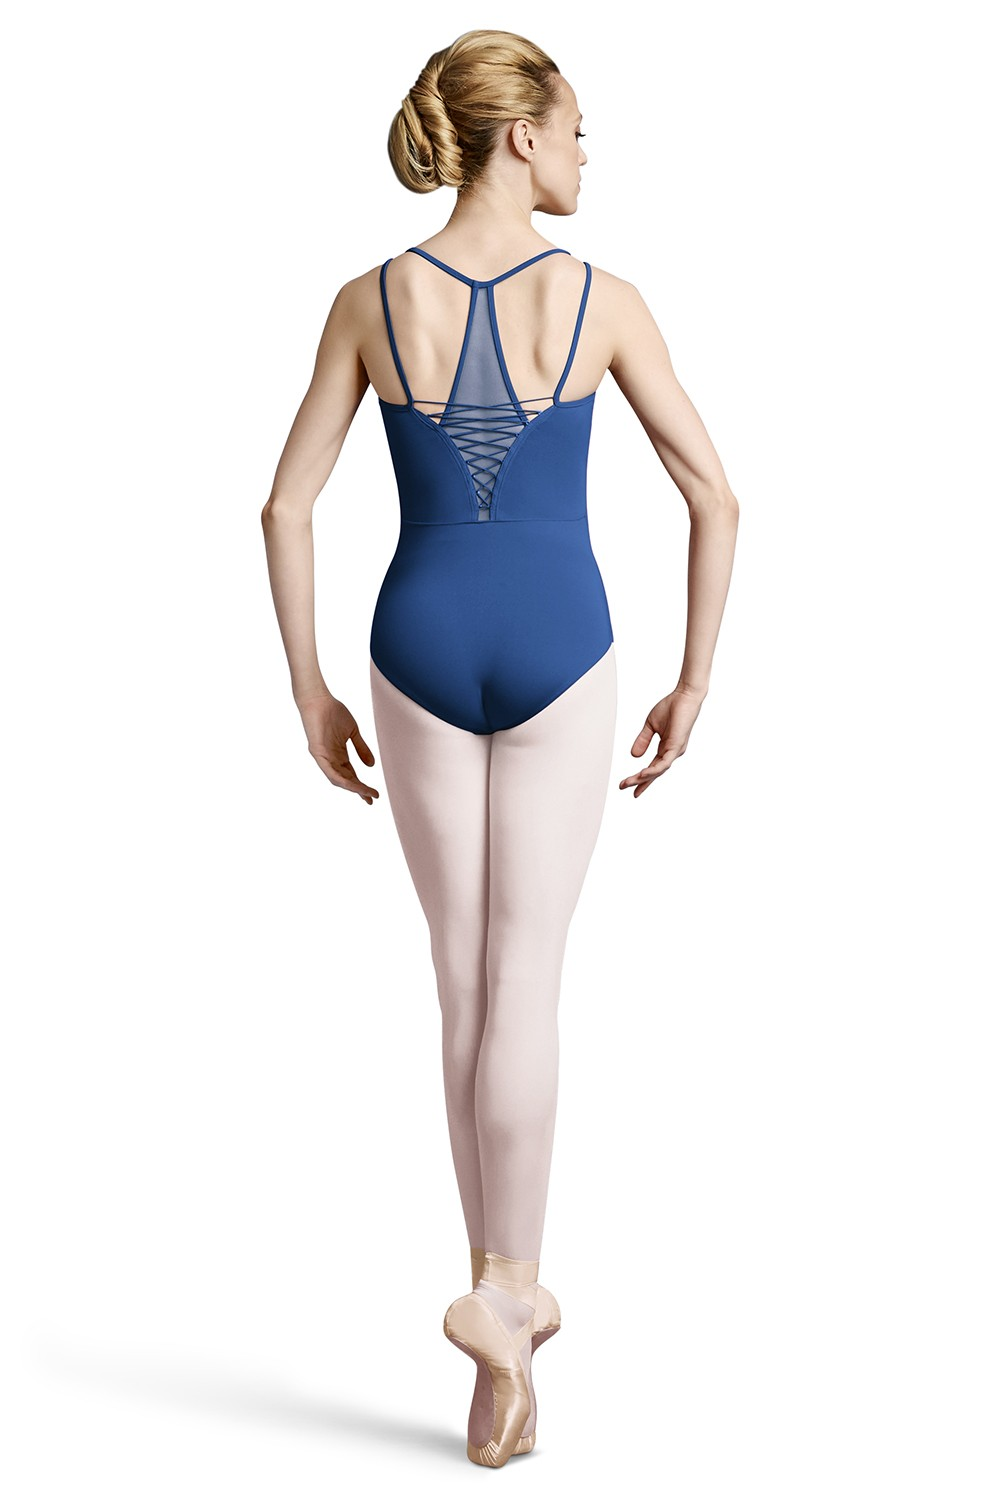 Clidna Girls Camisole Leotards